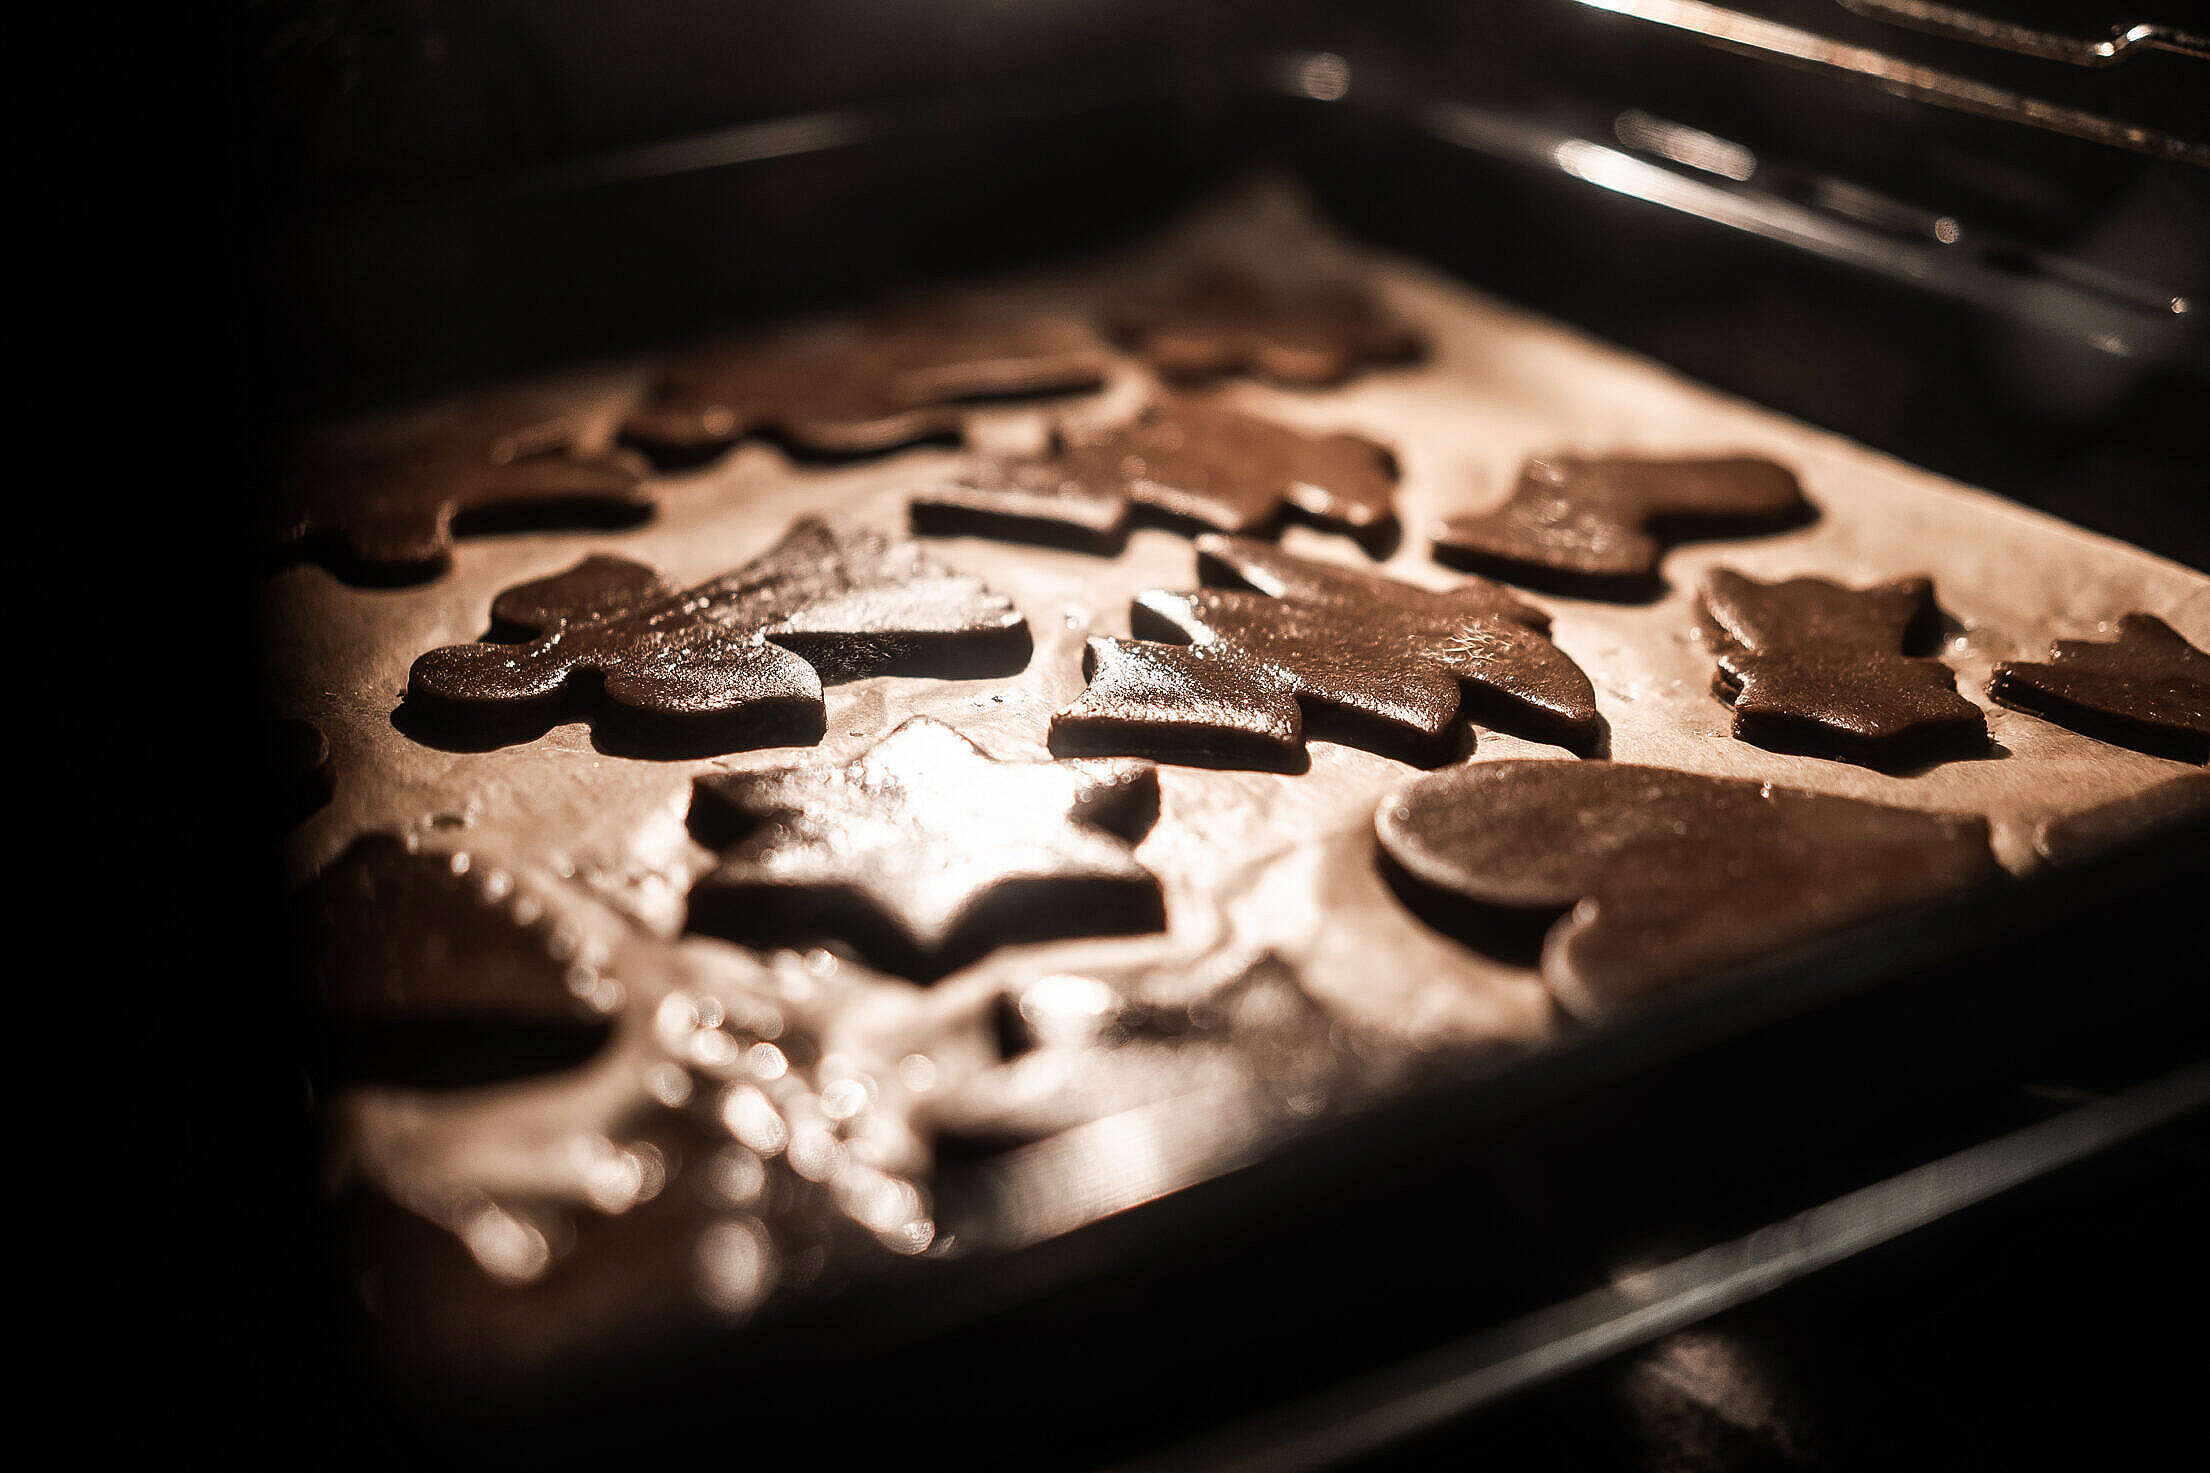 Baking Tray Full of Christmas Gingerbread Cookies Free Stock Photo